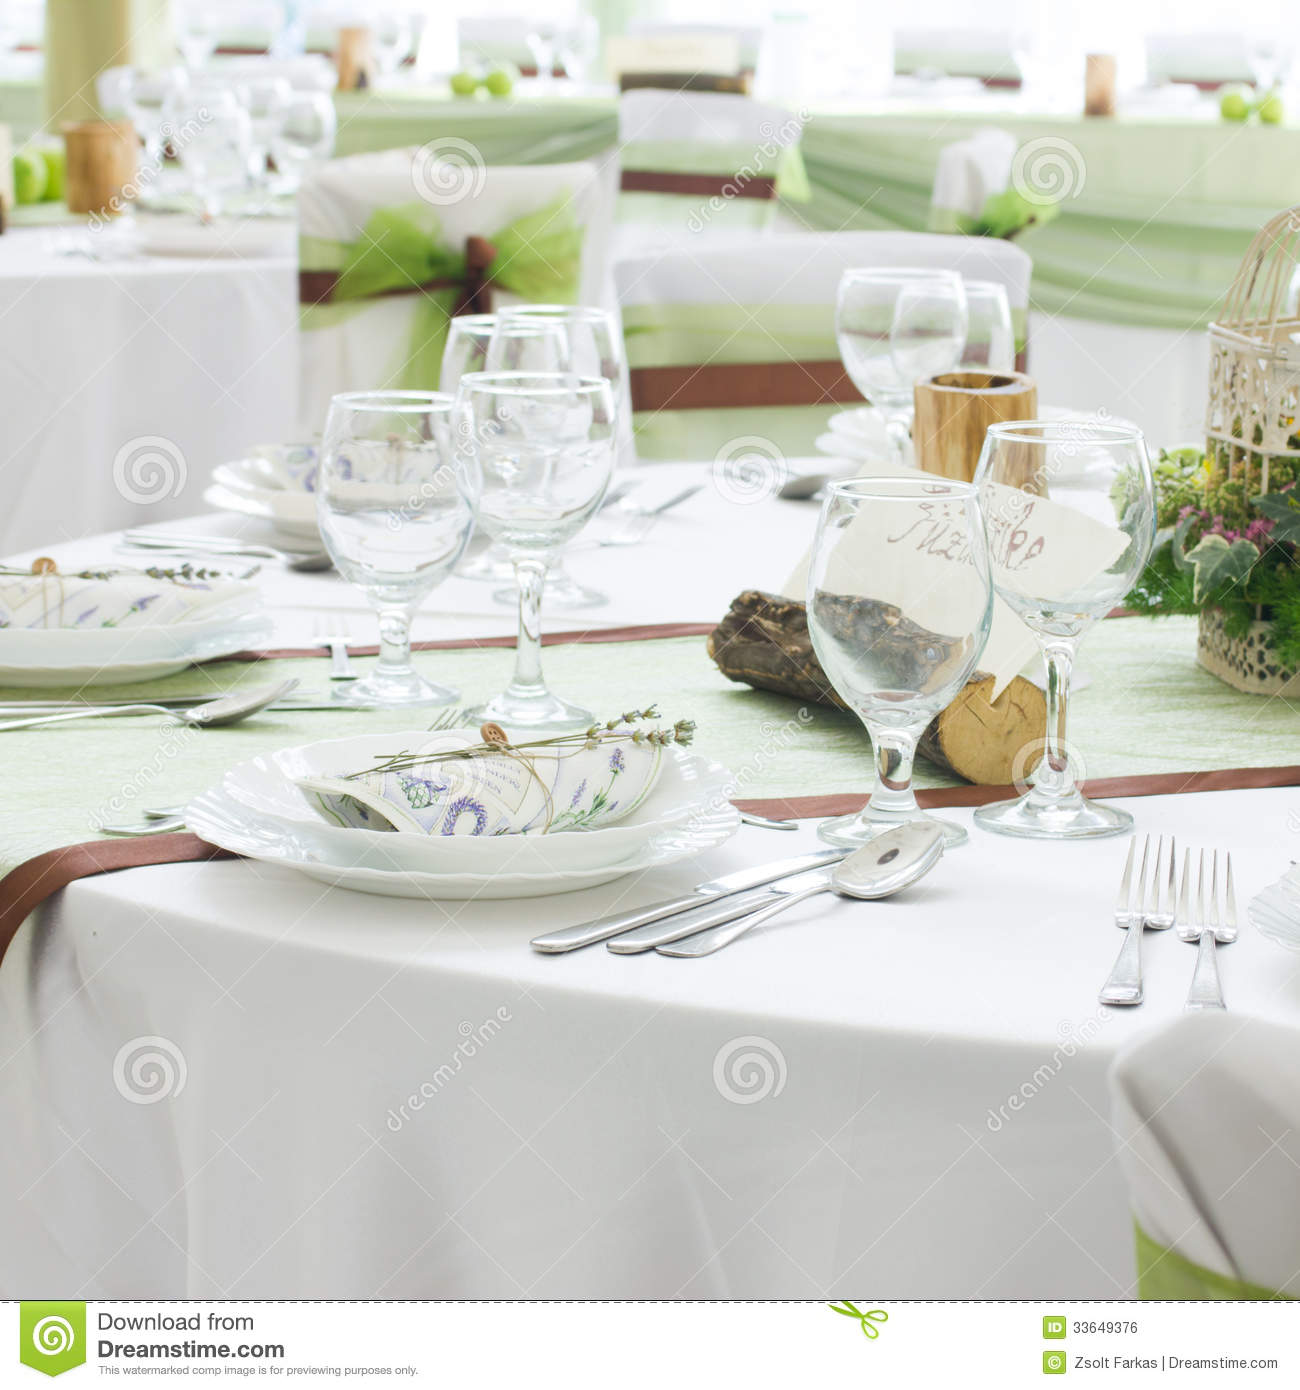 Wedding Table Set With Decoration For Fine Dining Or Another Catered Event Ro